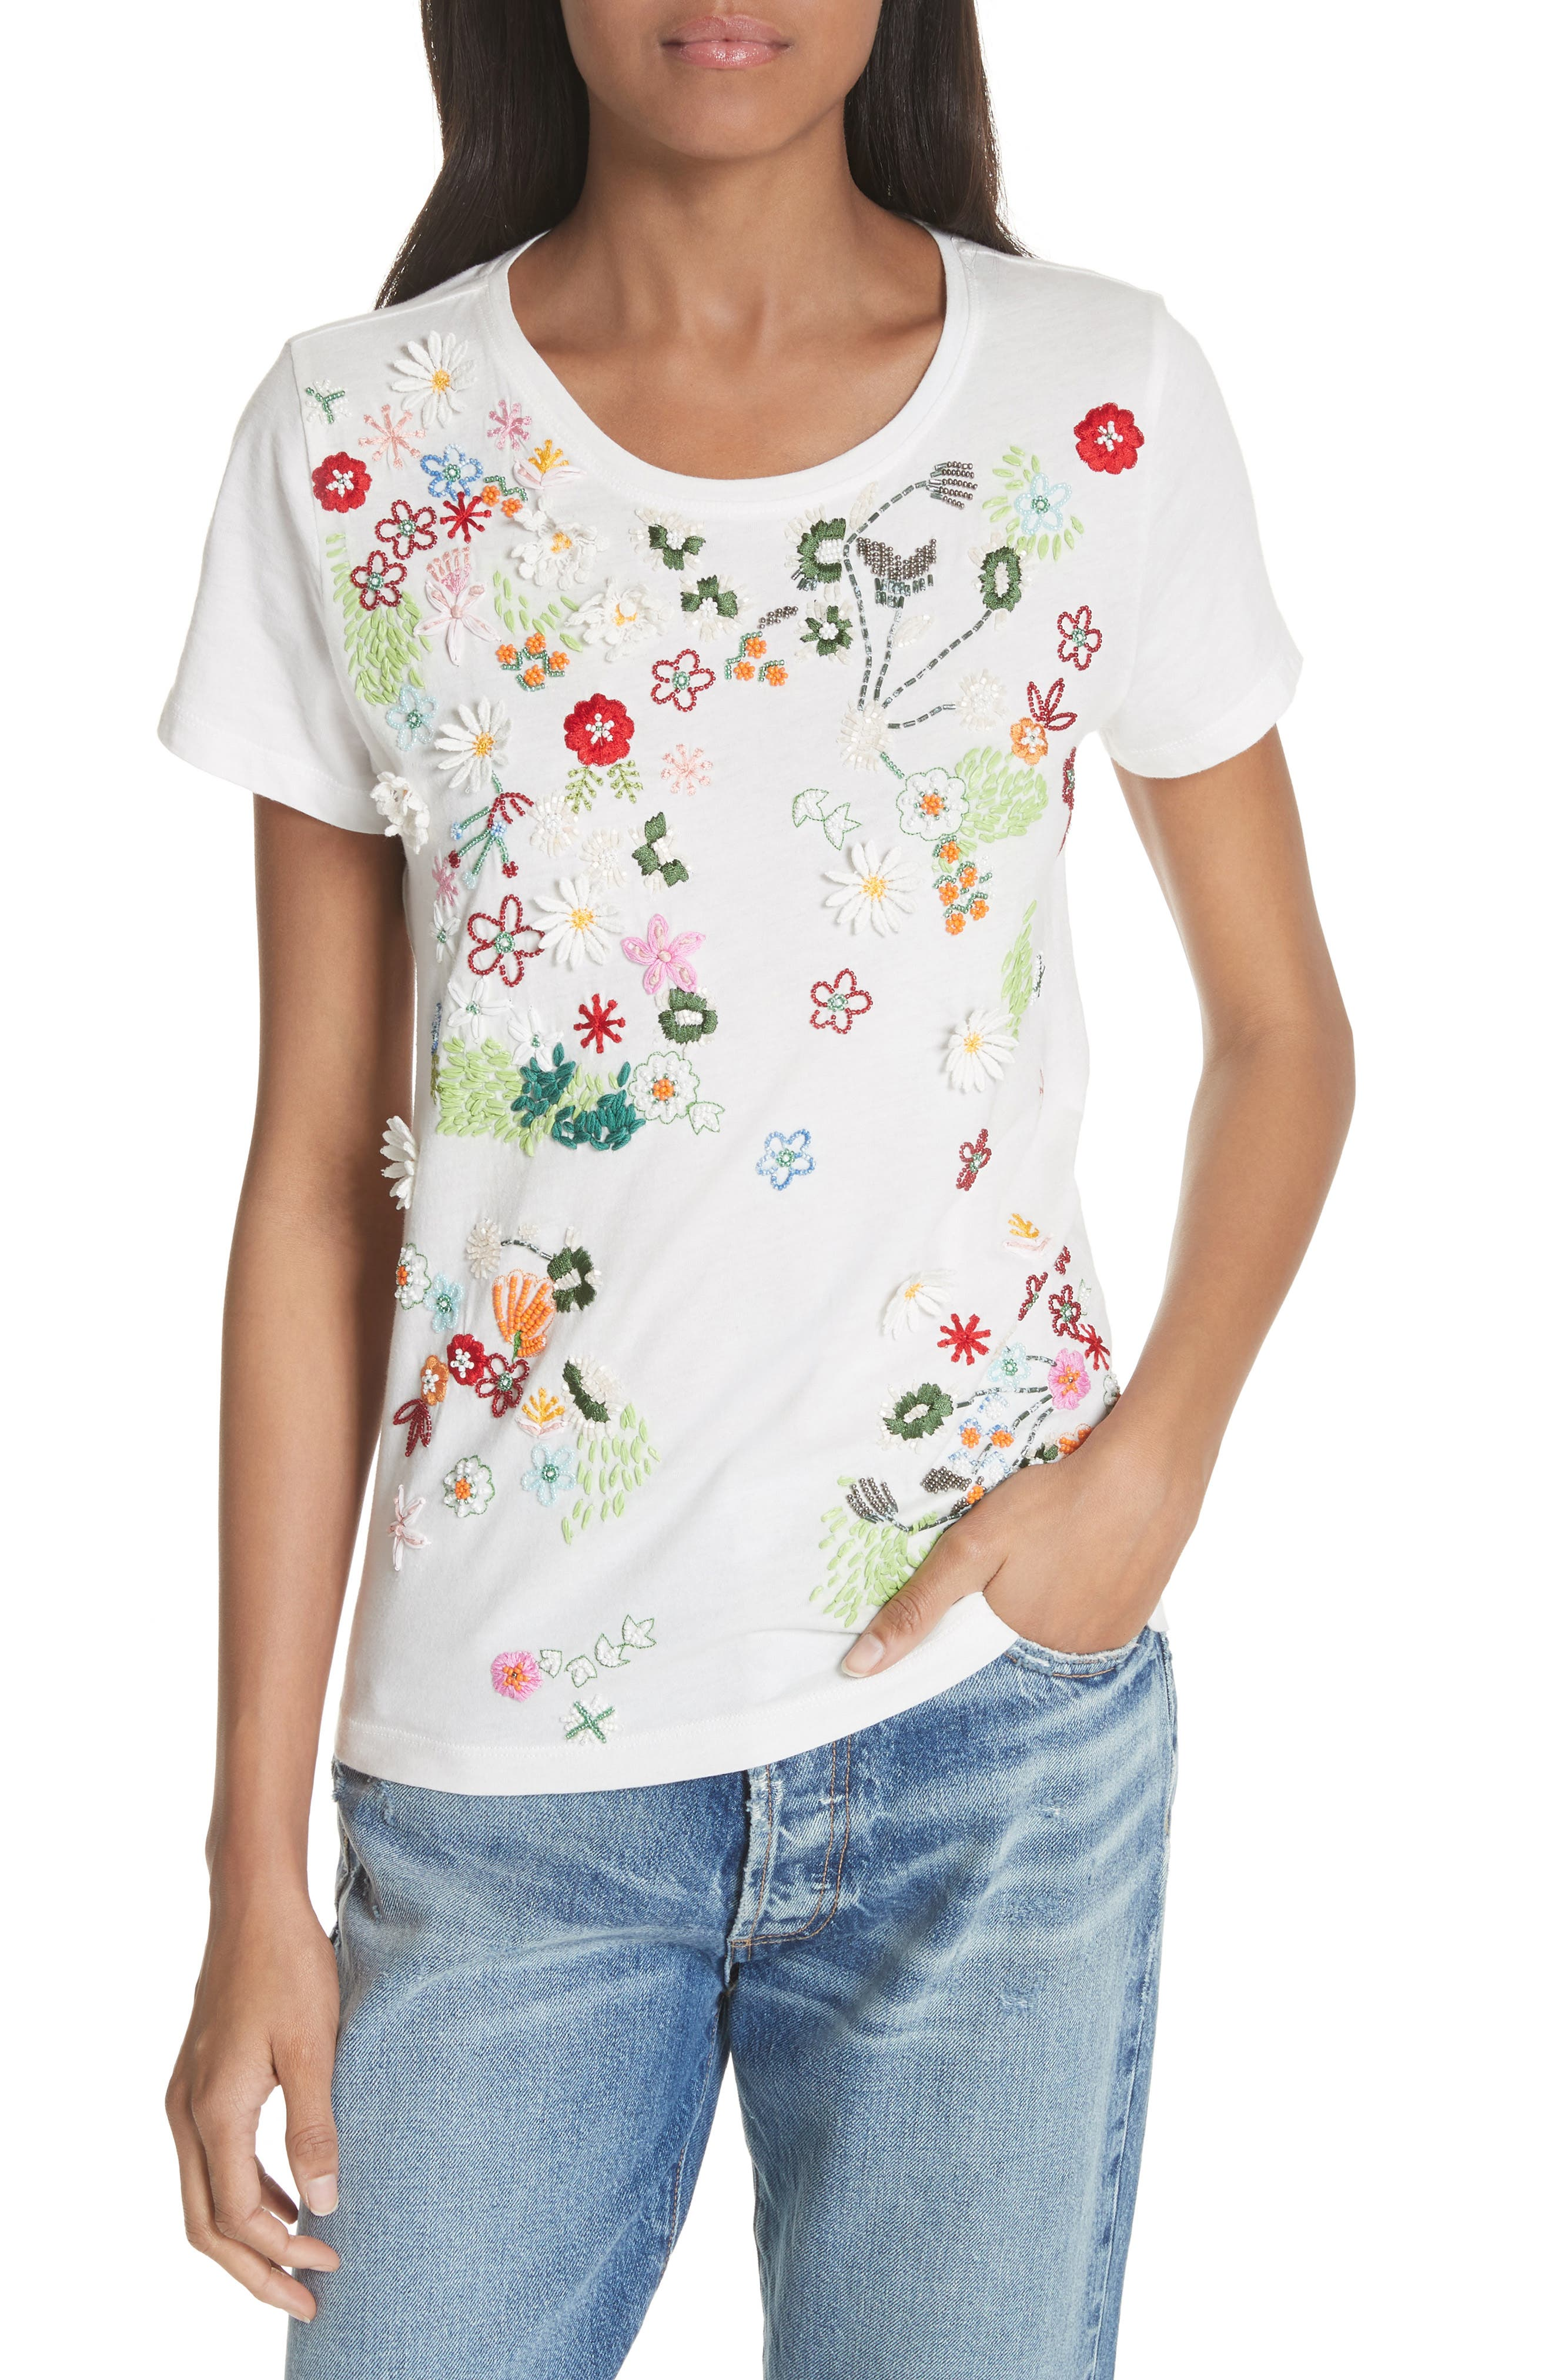 Rylyn Embellished Short Sleeve Tee,                         Main,                         color, Off White/ Multi